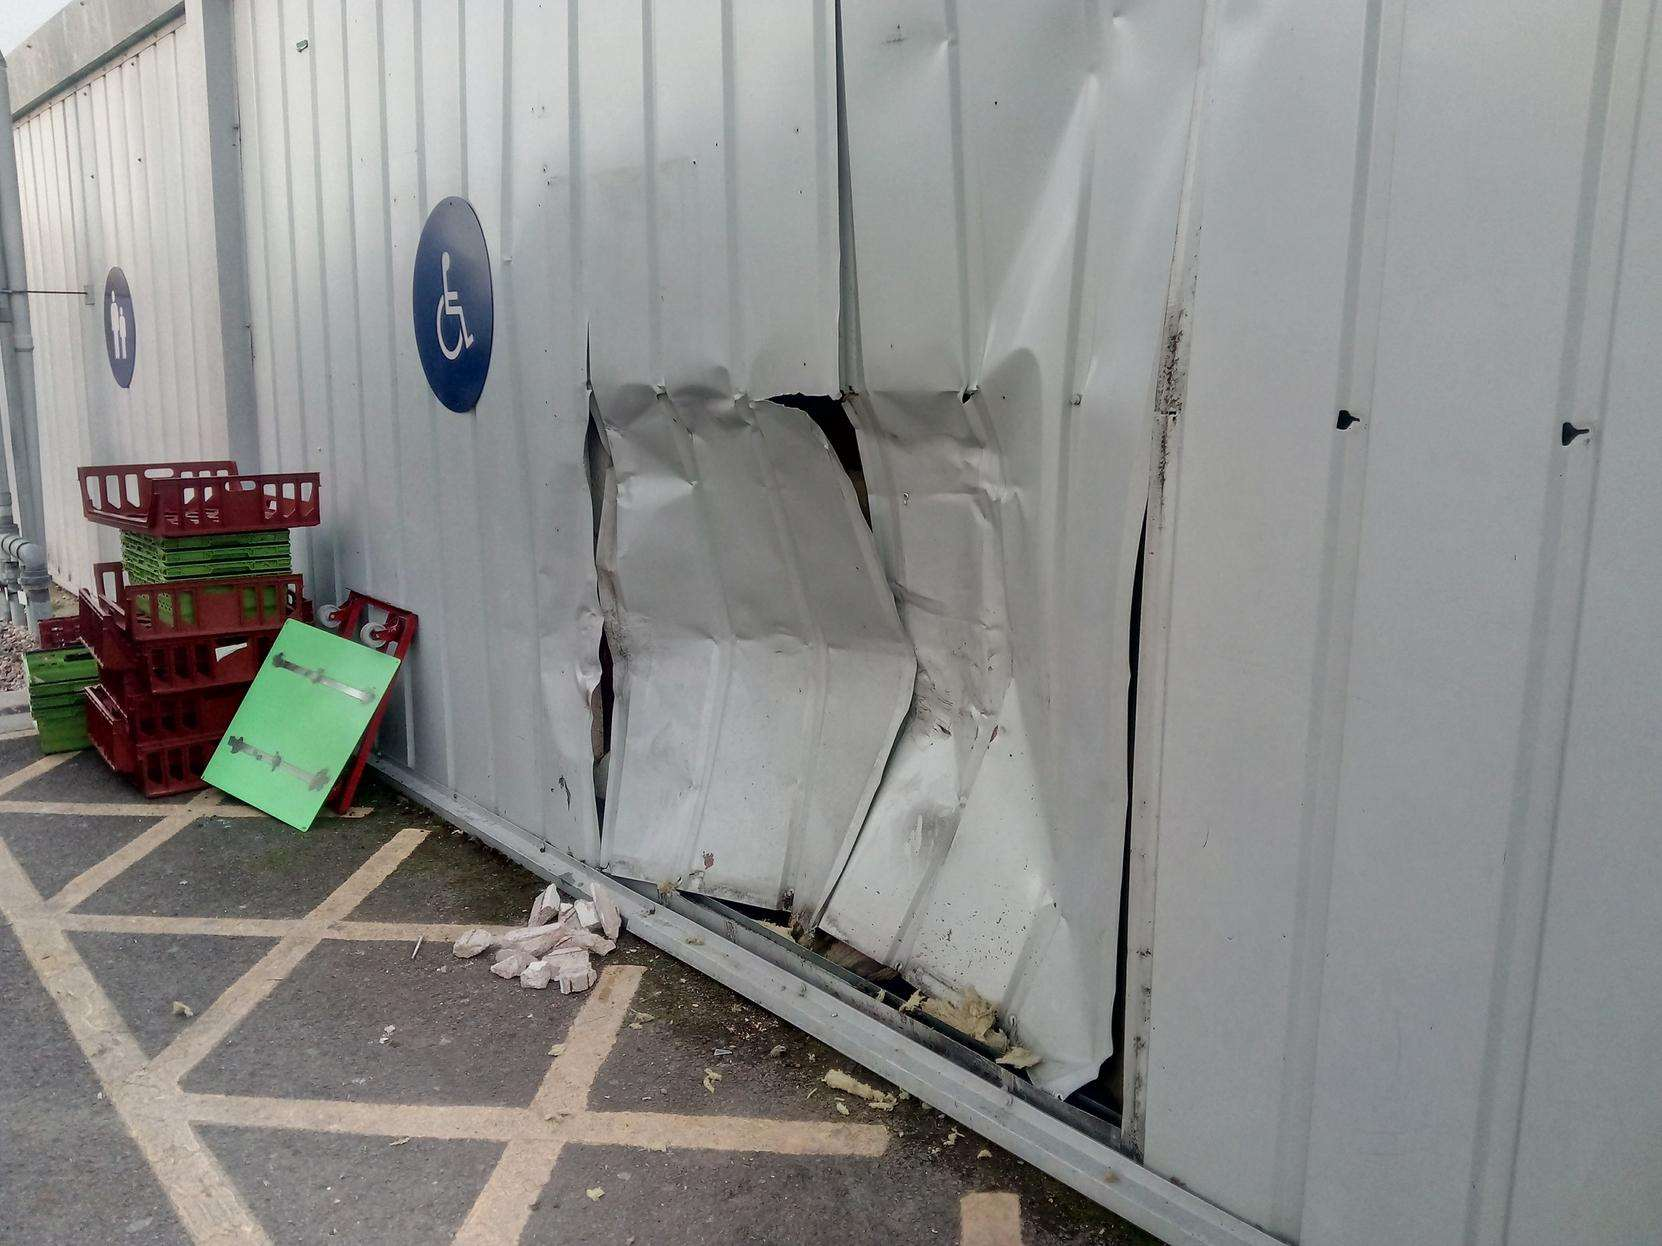 After the attempted thieves couldn't move the cash machine, they used a 4x4 to ram the wall behind it to try dislodge it